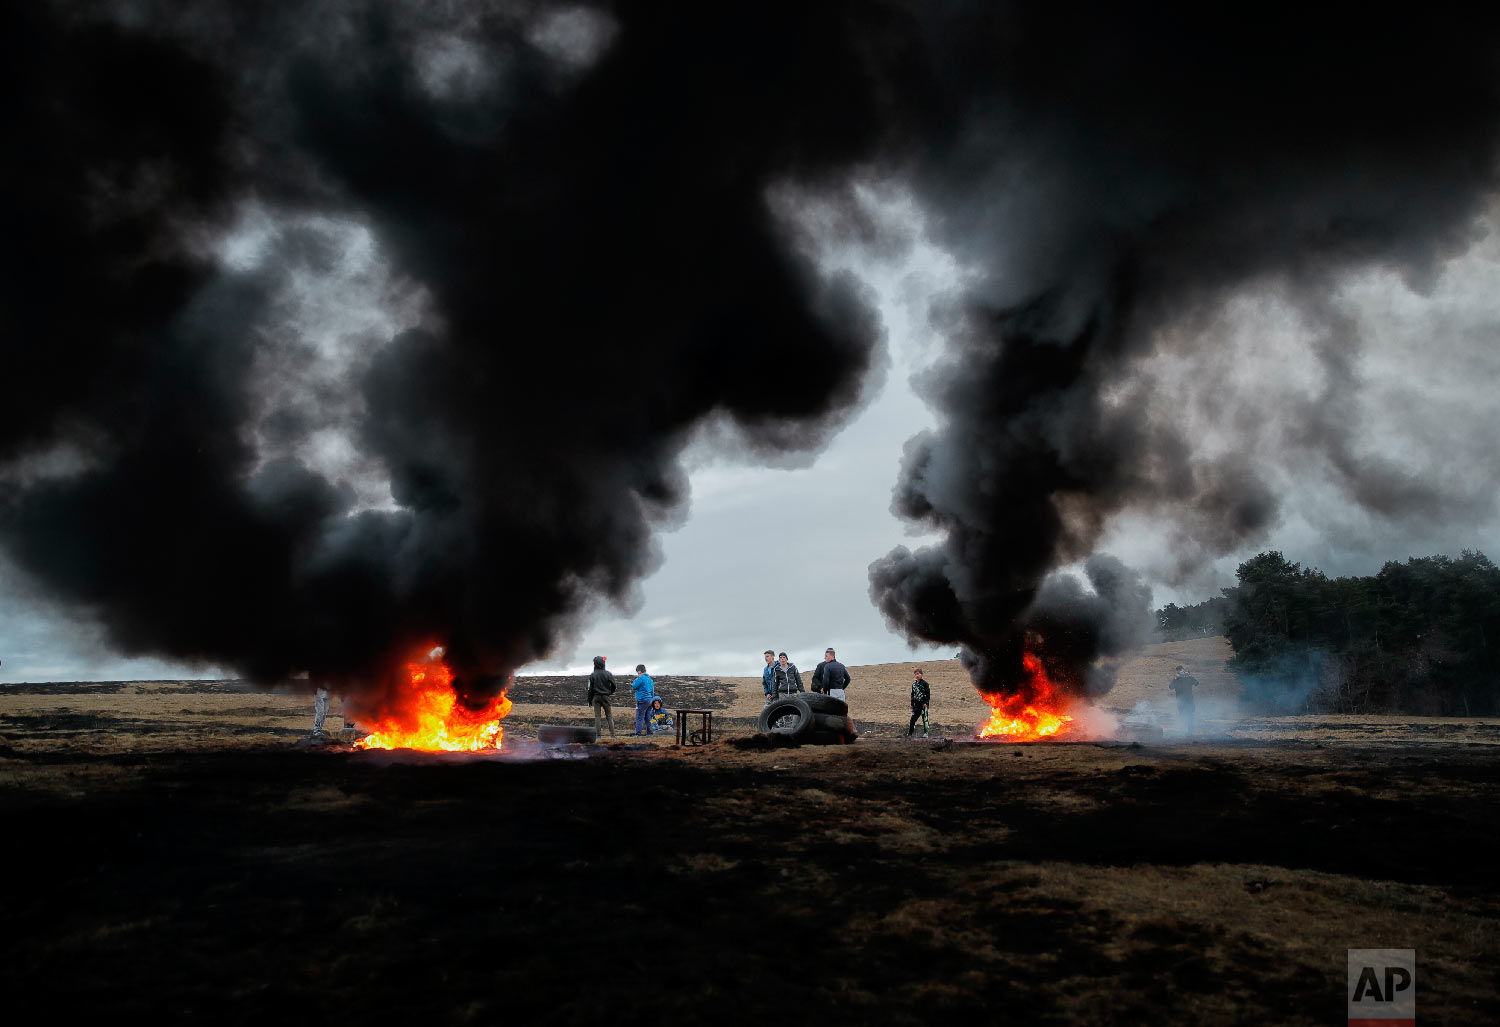 Children and youngsters stand by burning tires during a ritual marking the upcoming Clean Monday, the beginning of the Great Lent, 40 days ahead of Orthodox Easter, on the hills surrounding the village of Poplaca, in central Romania's Transylvania region, Sunday, March 10, 2019. (AP Photo/Vadim Ghirda)